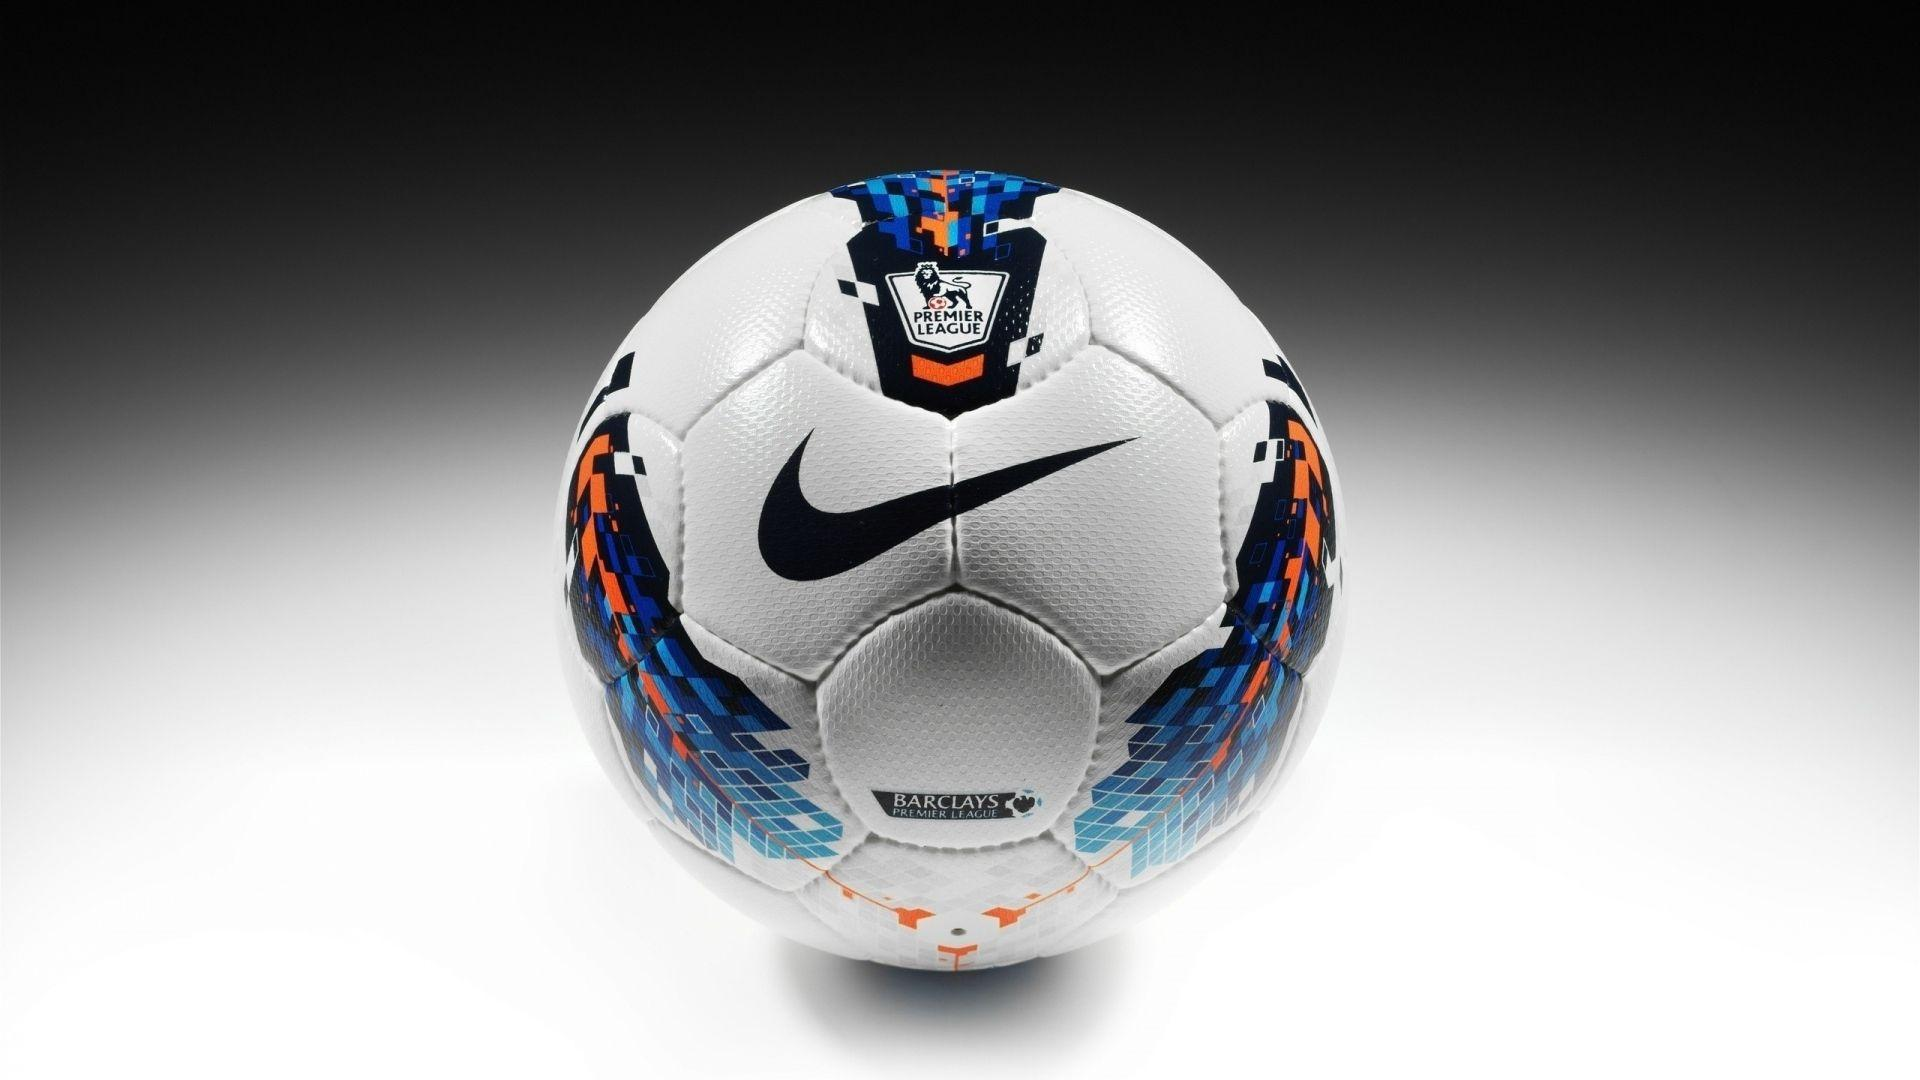 Download Wallpapers 1920x1080 Football, Nike, Ball, Barclays